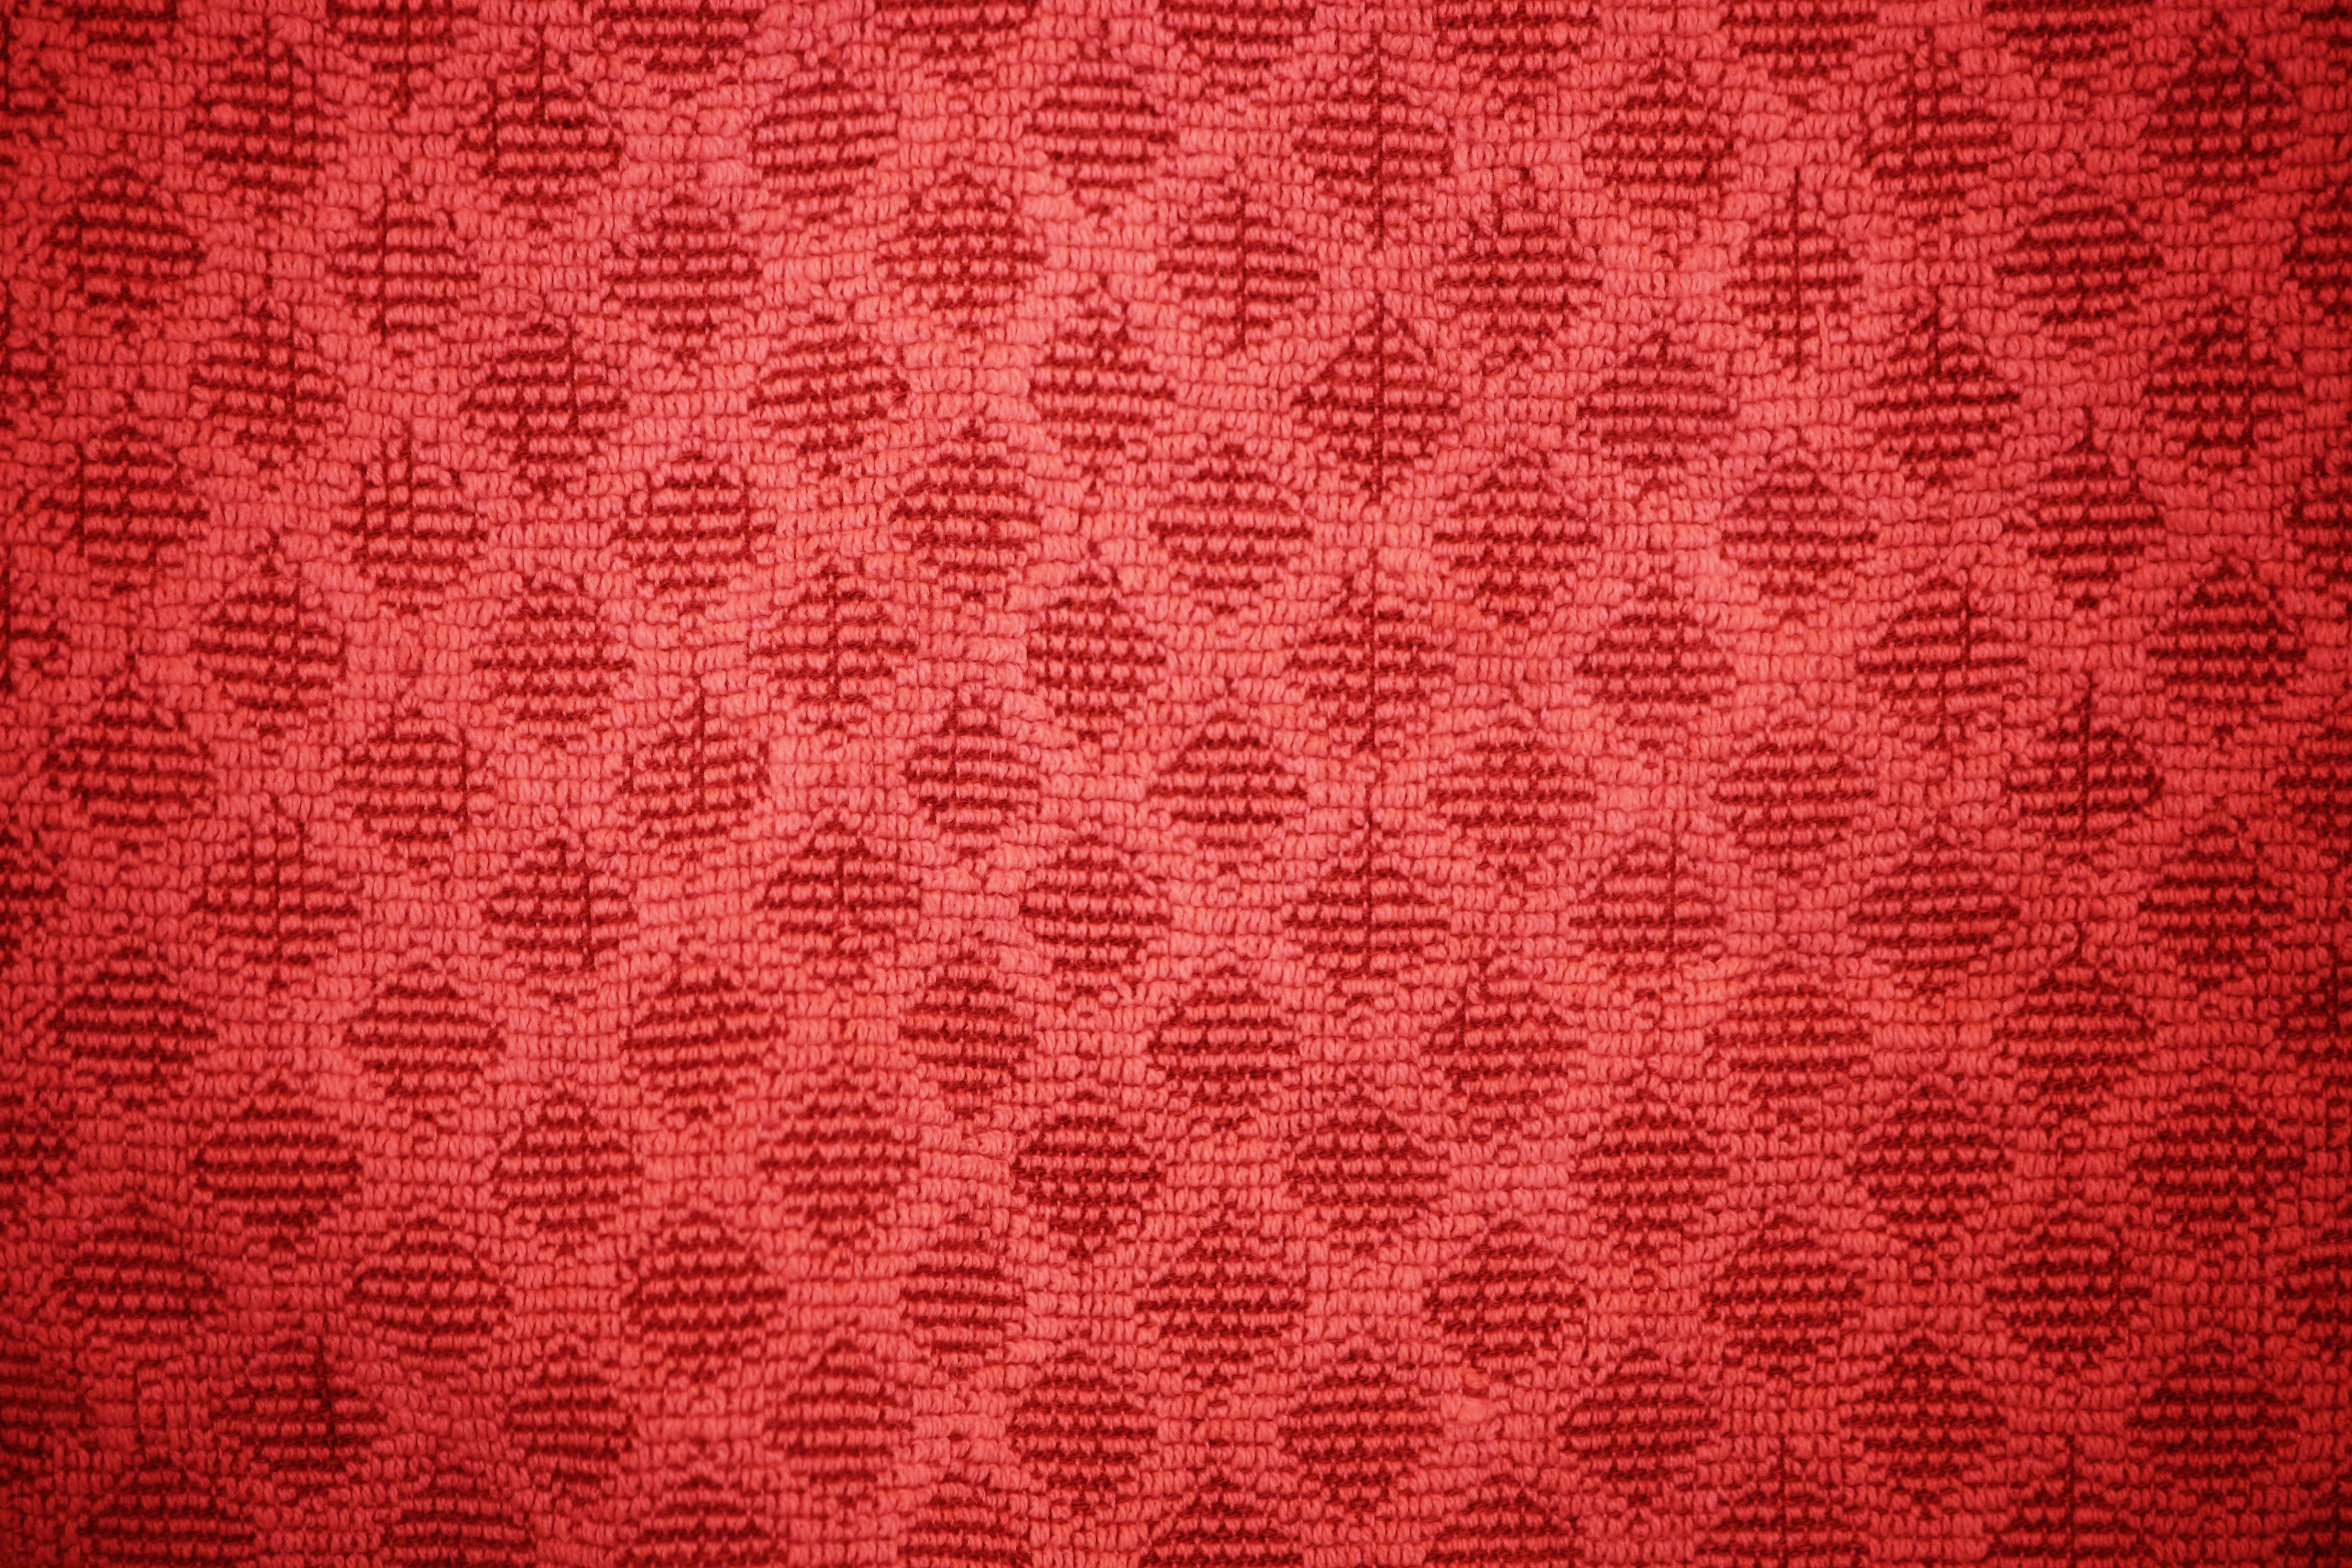 Red Dish Towel with Diamond Pattern Texture Picture